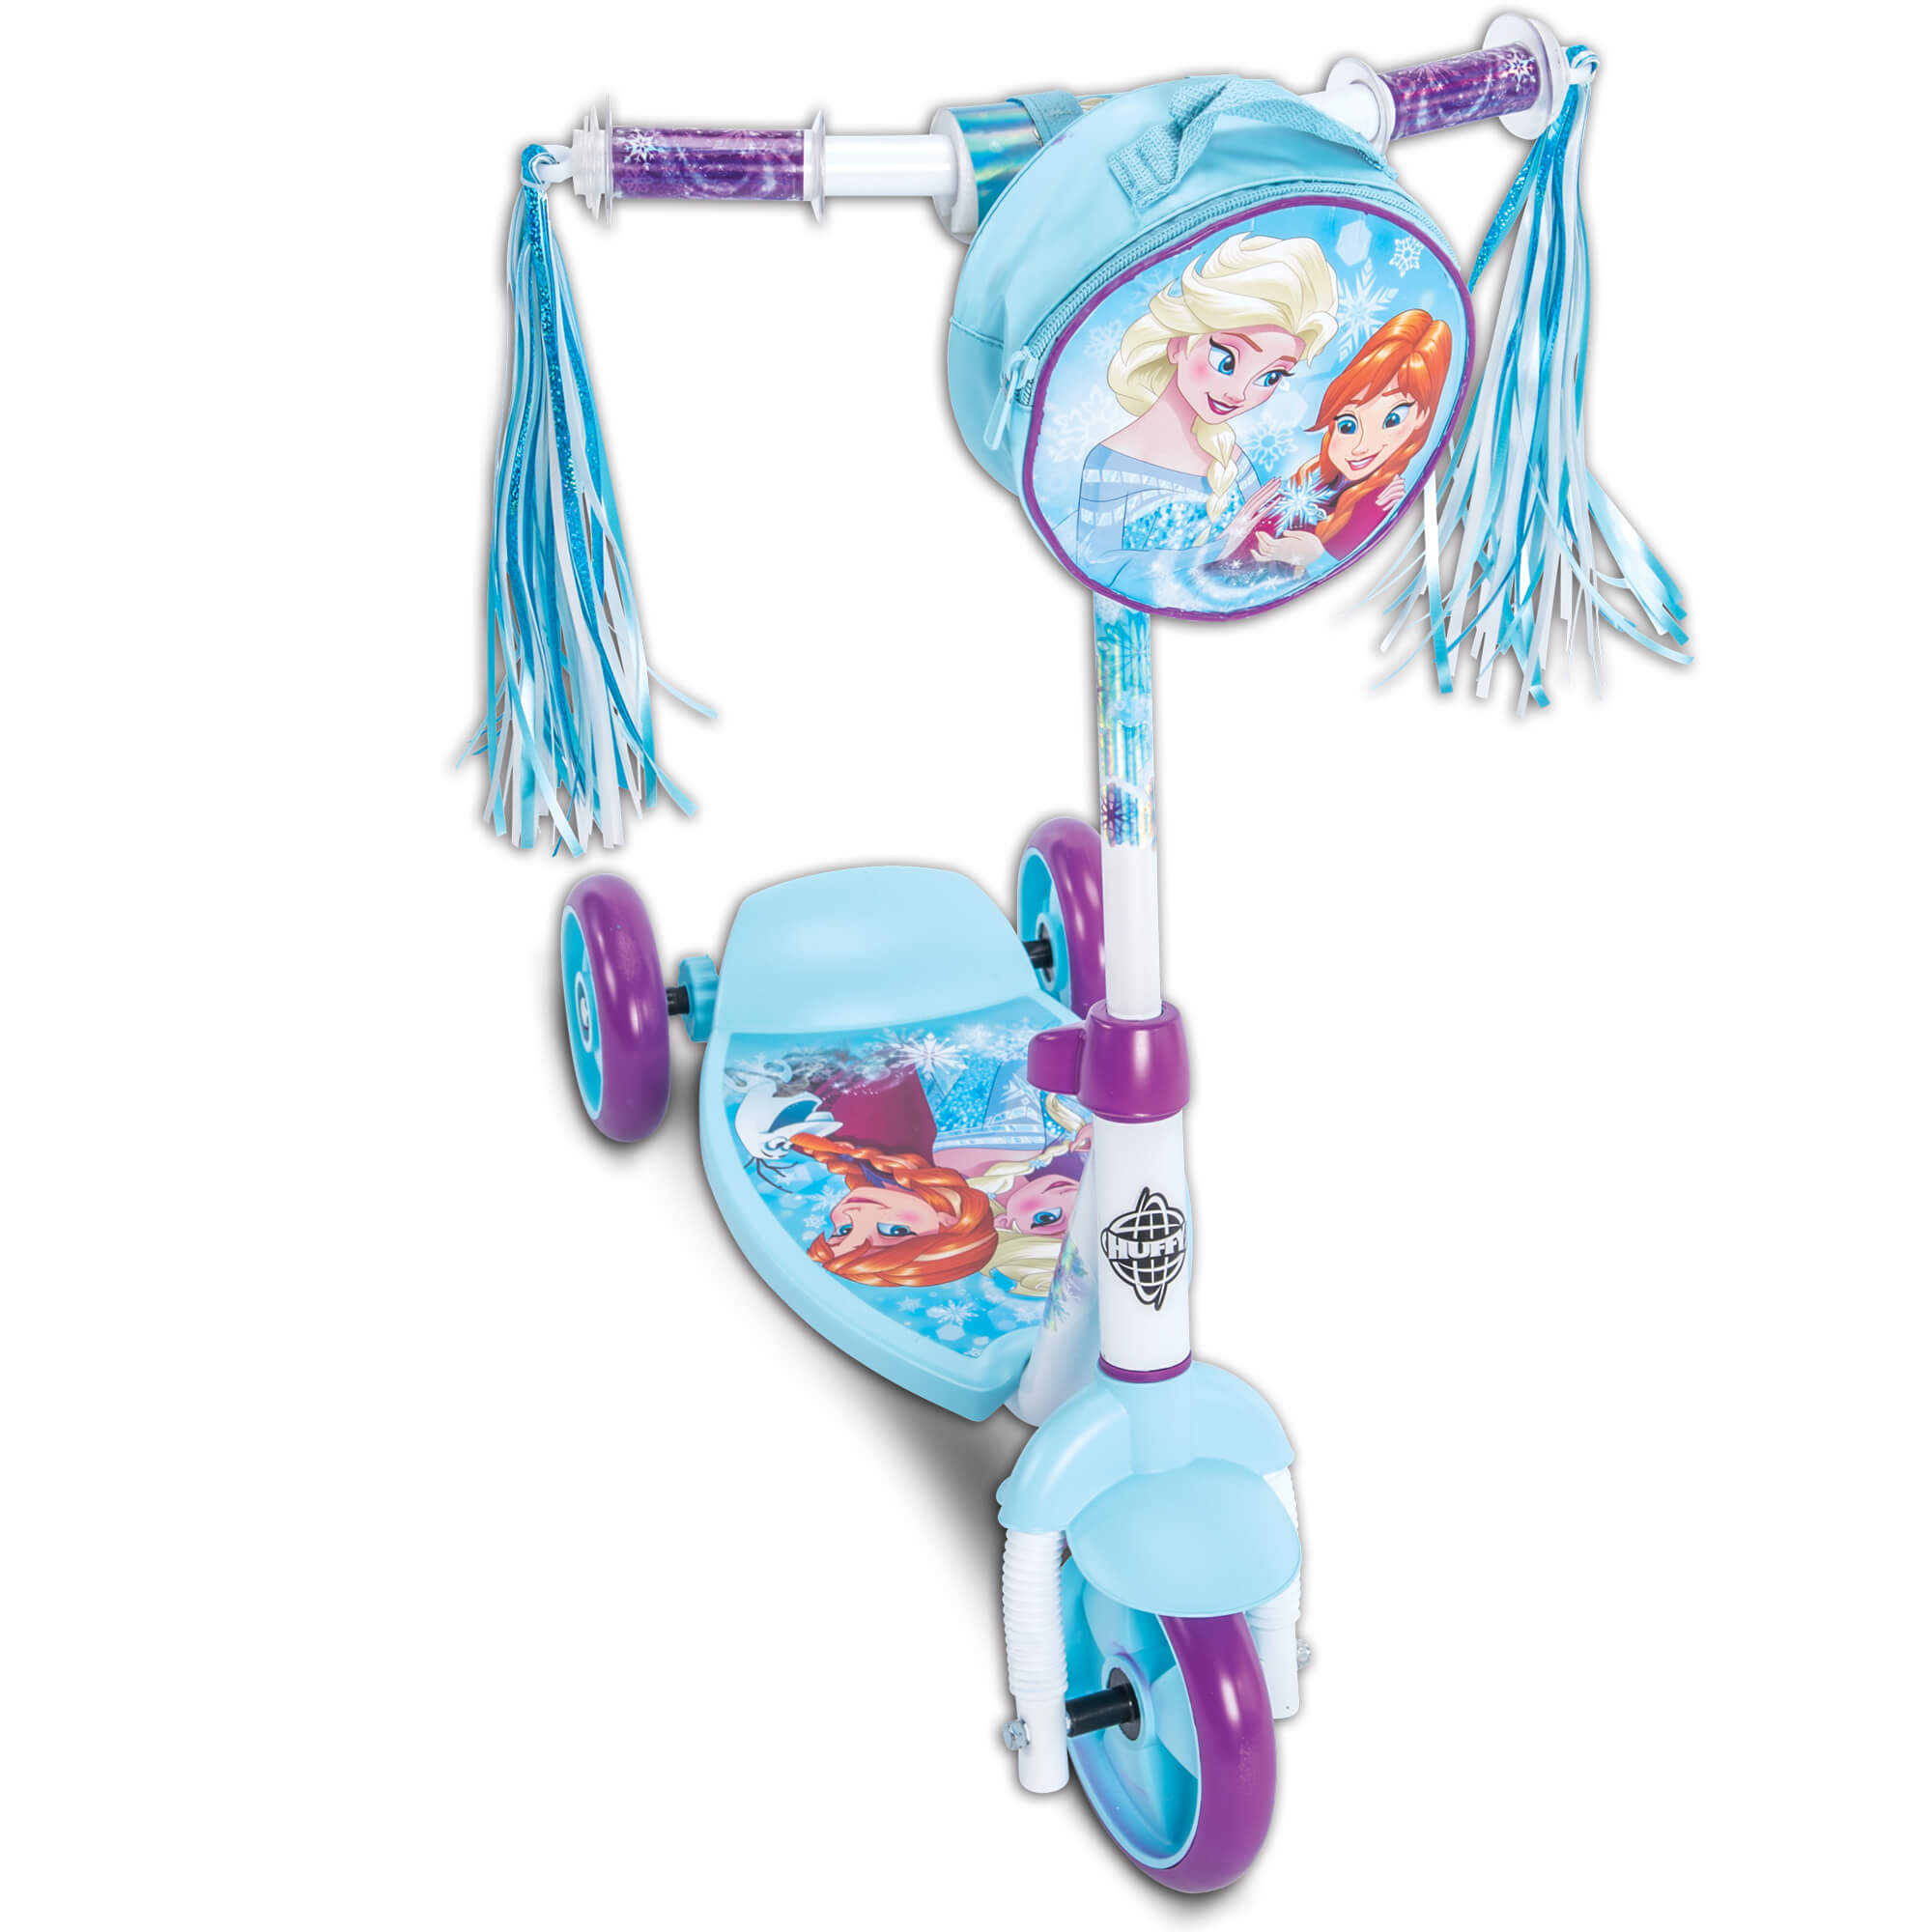 Disney Frozen Girls' 3-Wheel Preschool Scooter, by Huffy by Huffy